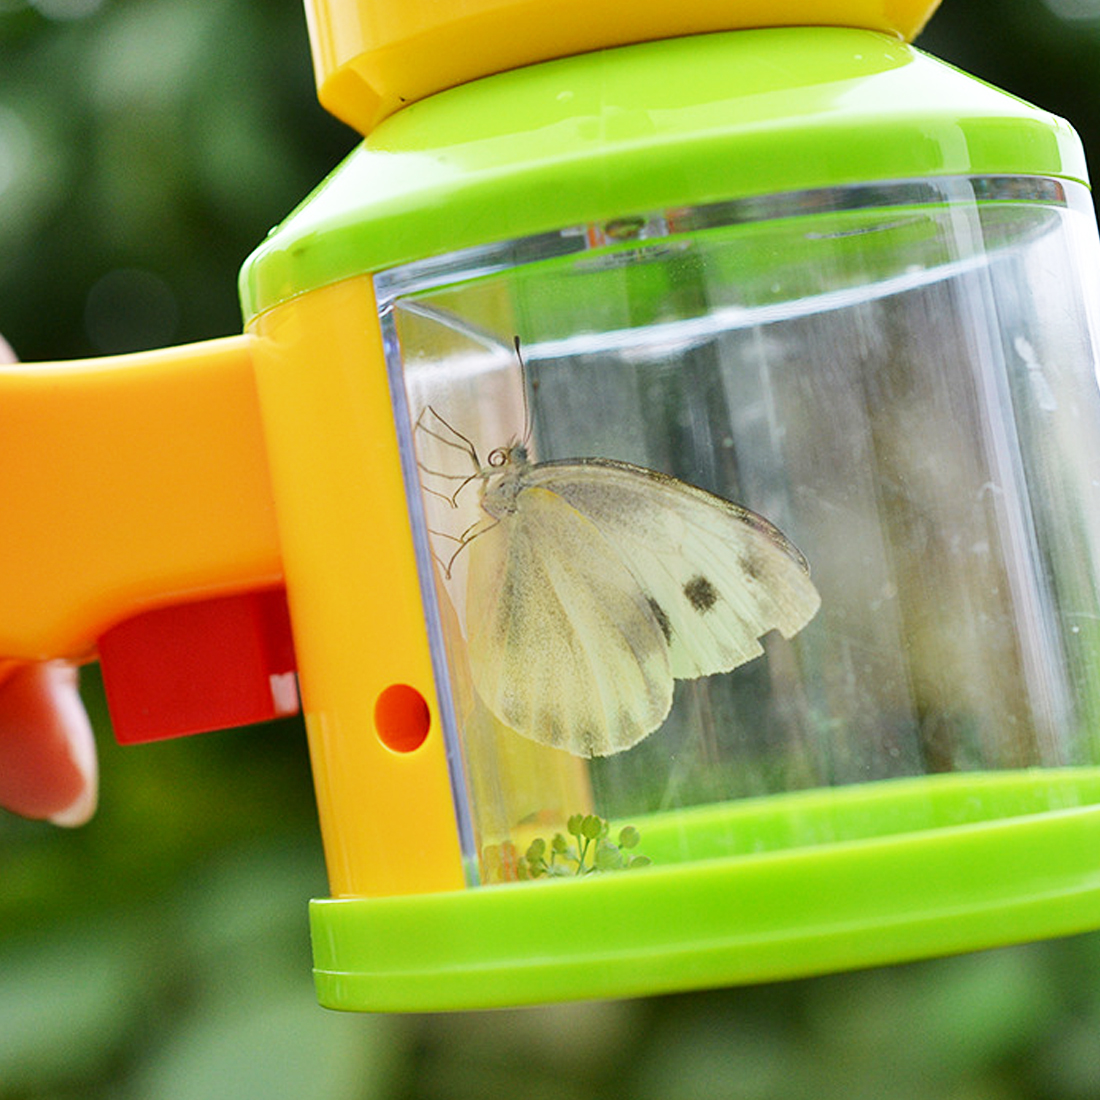 Children Scientific Bug Catcher Viewer Insect Magnifier Microscope Catching Kit Early Education Kids Science Toys for ChildrenChildren Scientific Bug Catcher Viewer Insect Magnifier Microscope Catching Kit Early Education Kids Science Toys for Children